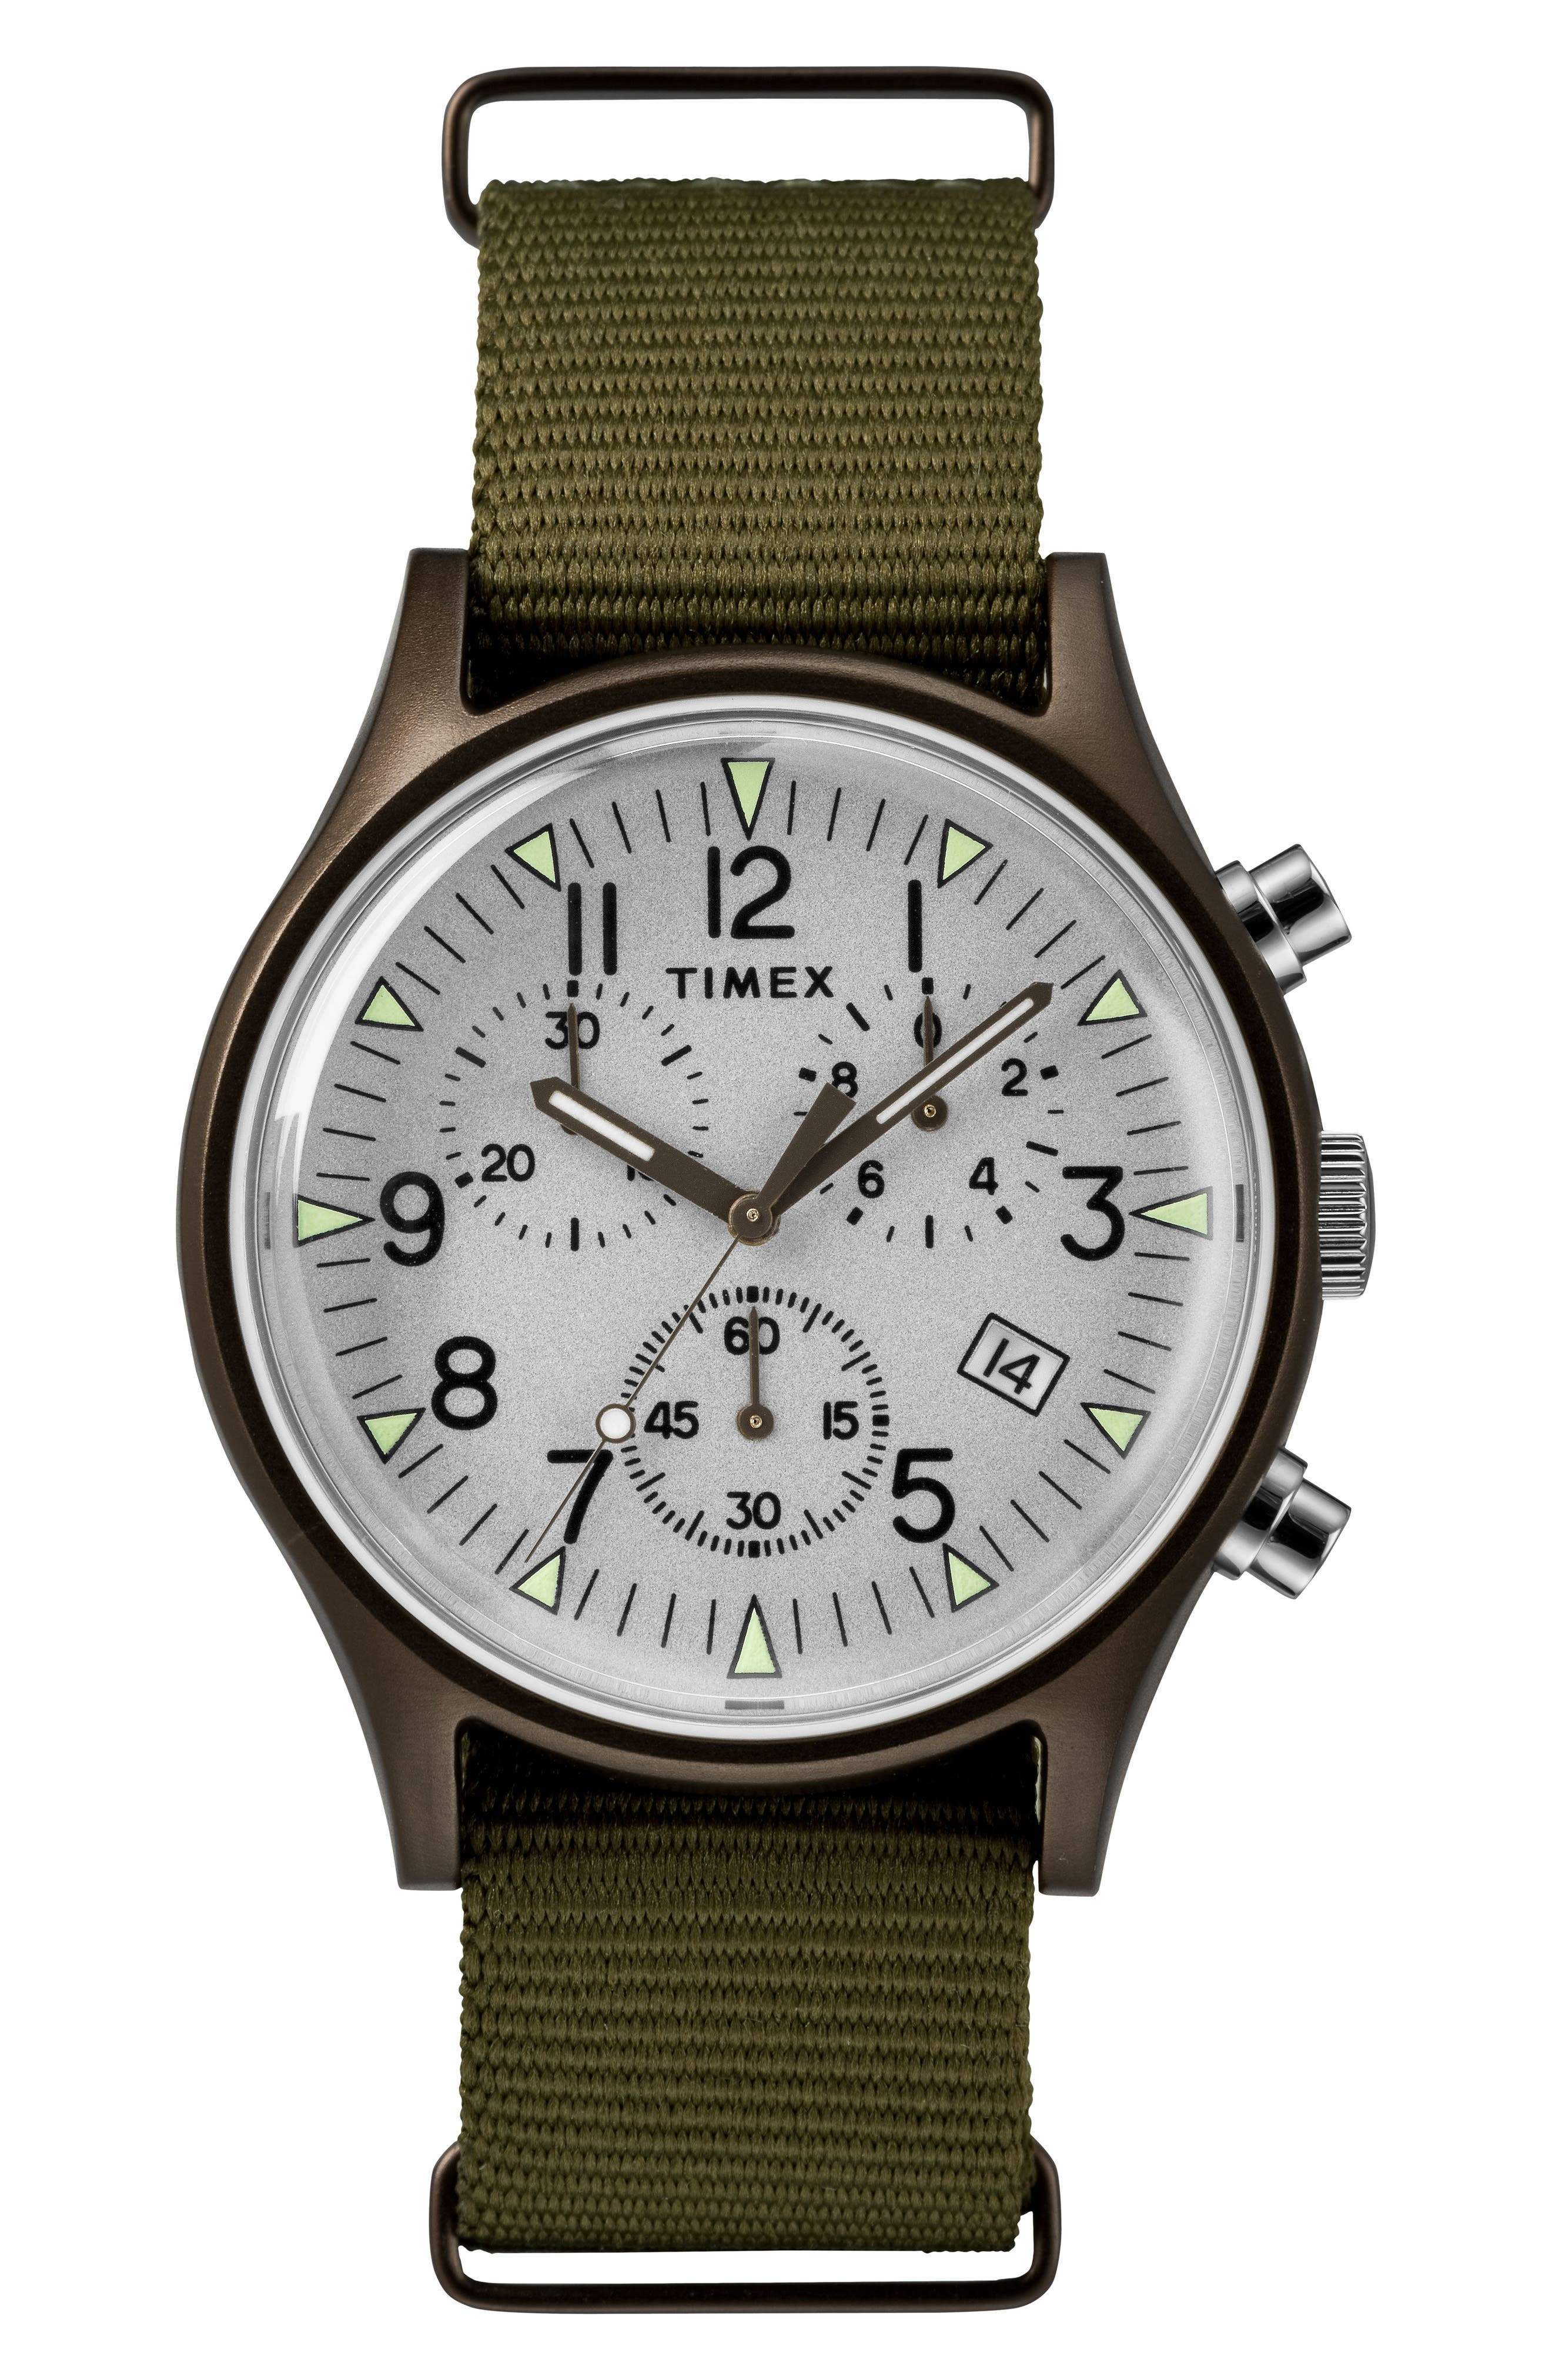 MK1 Chronograph Nylon Strap Watch,                         Main,                         color, OLIVE/ SILVER/ GREY